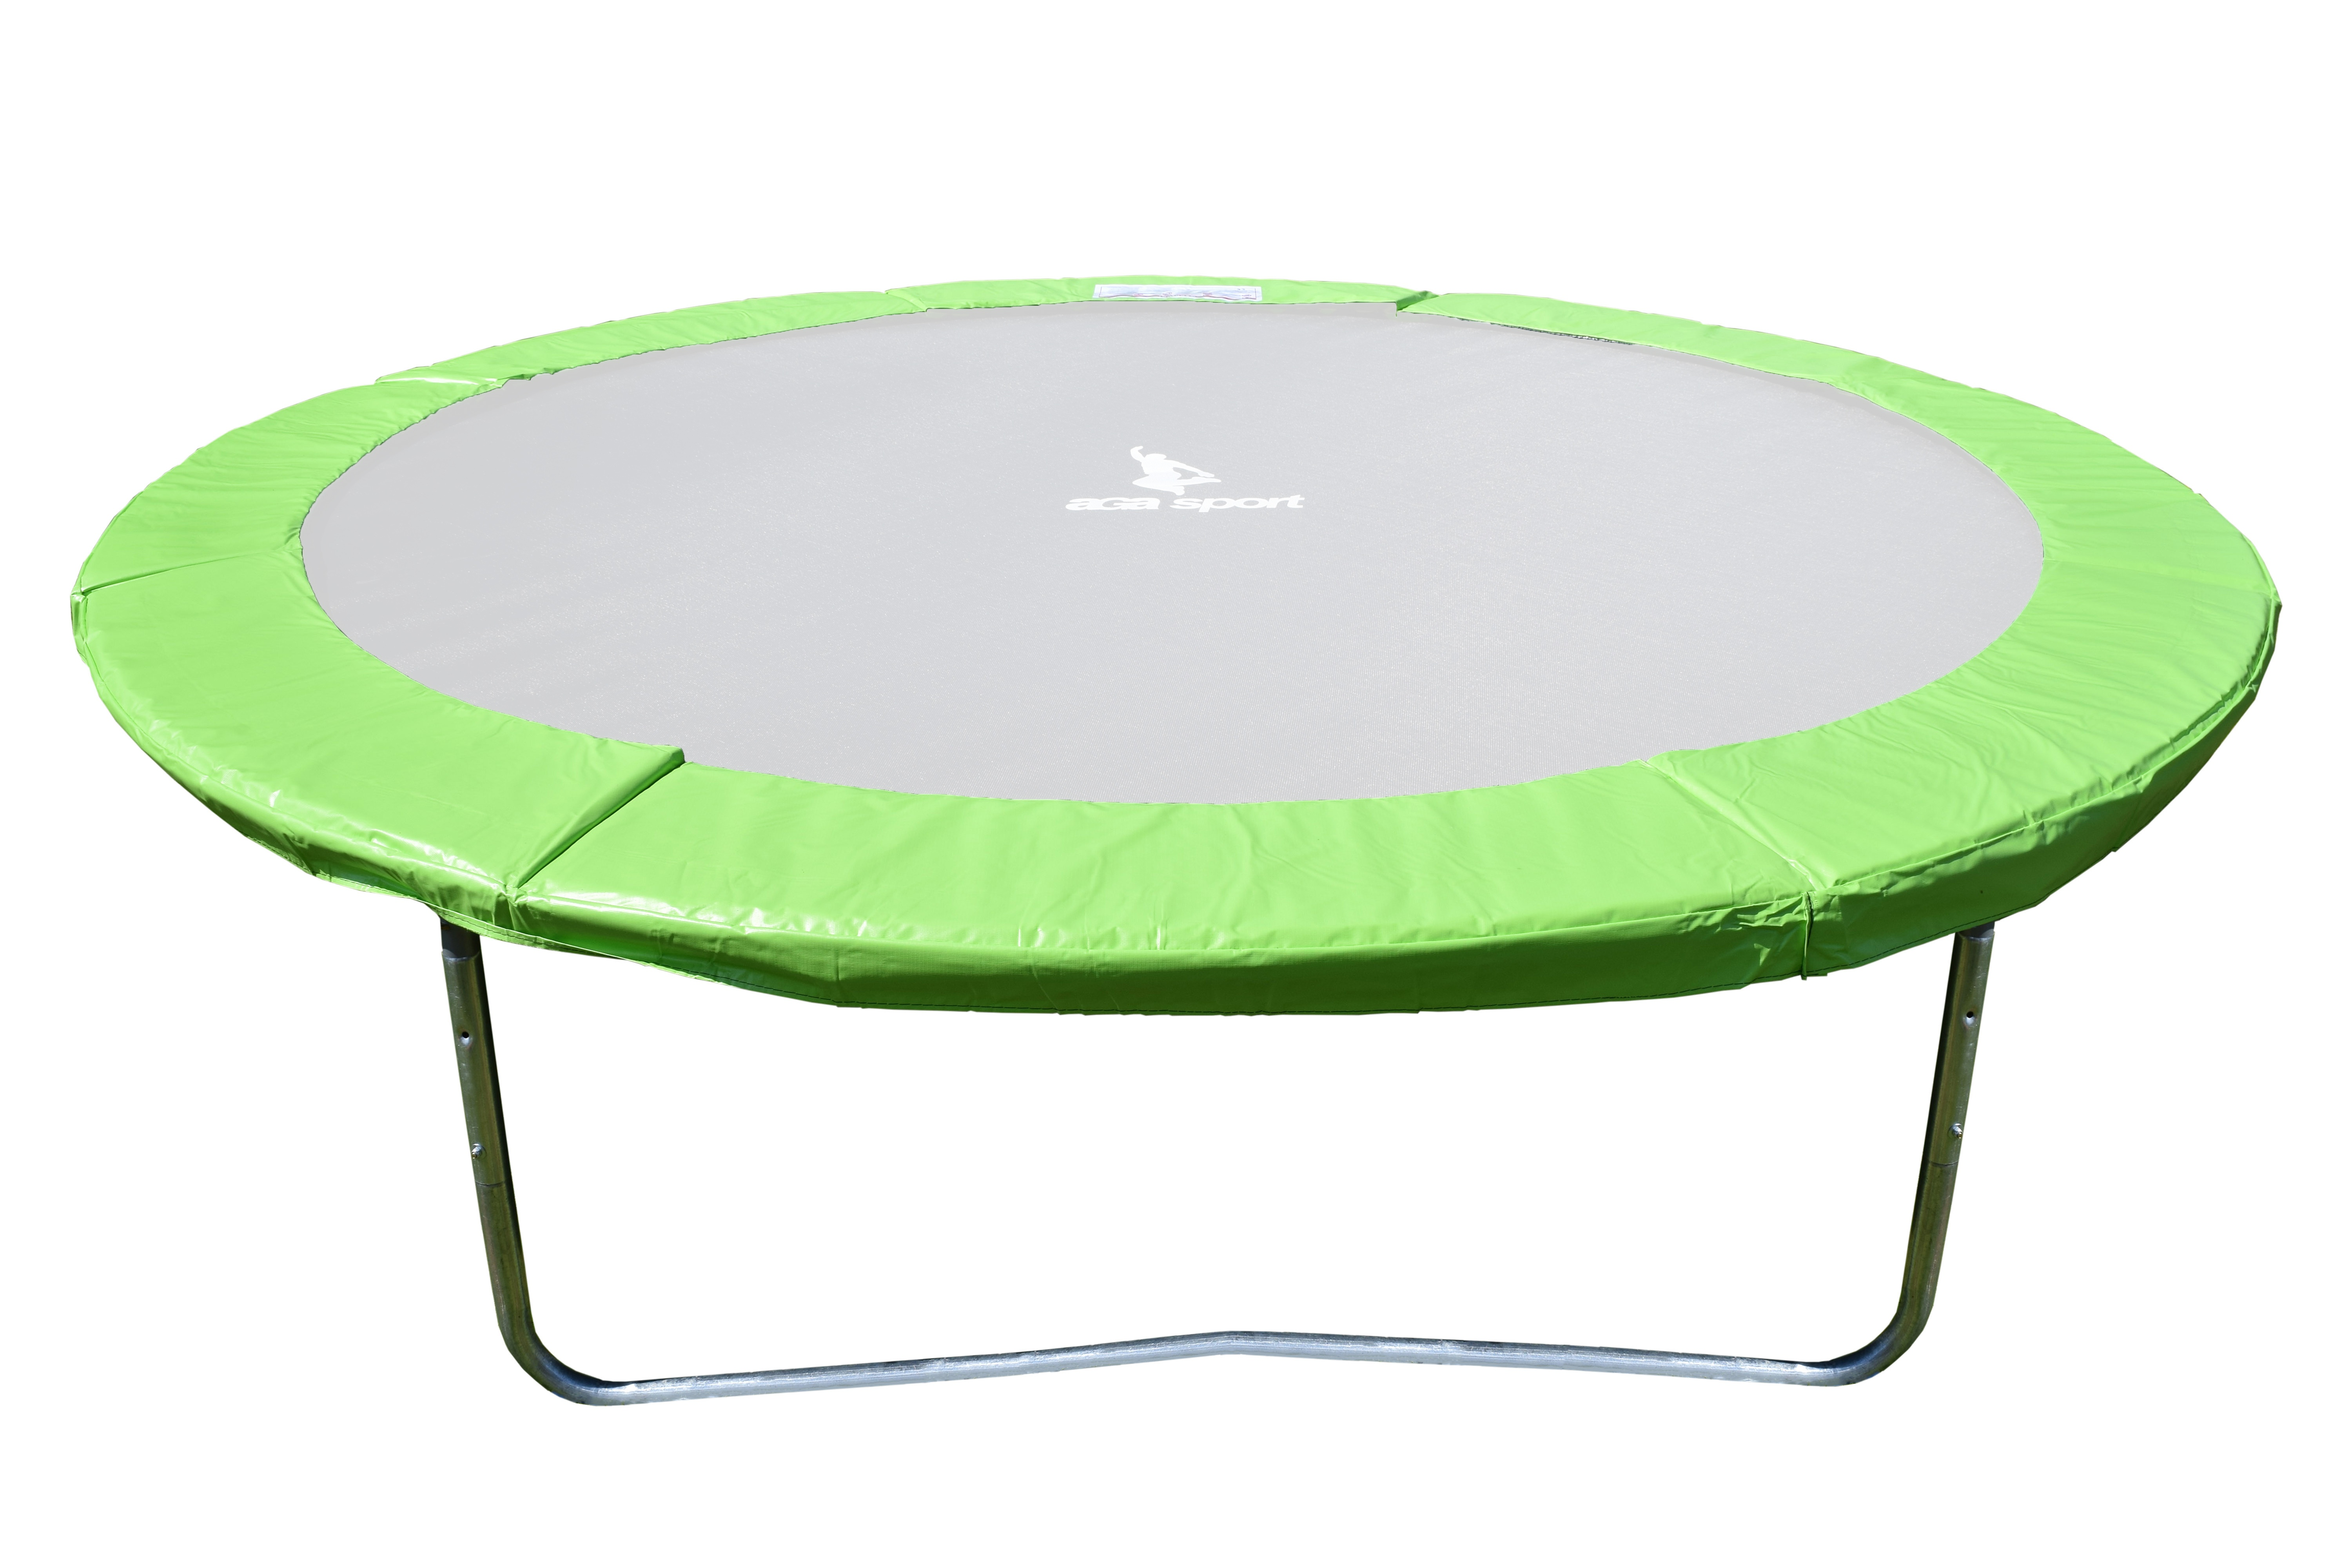 Aga Chránič pružin 460 cm Light Green